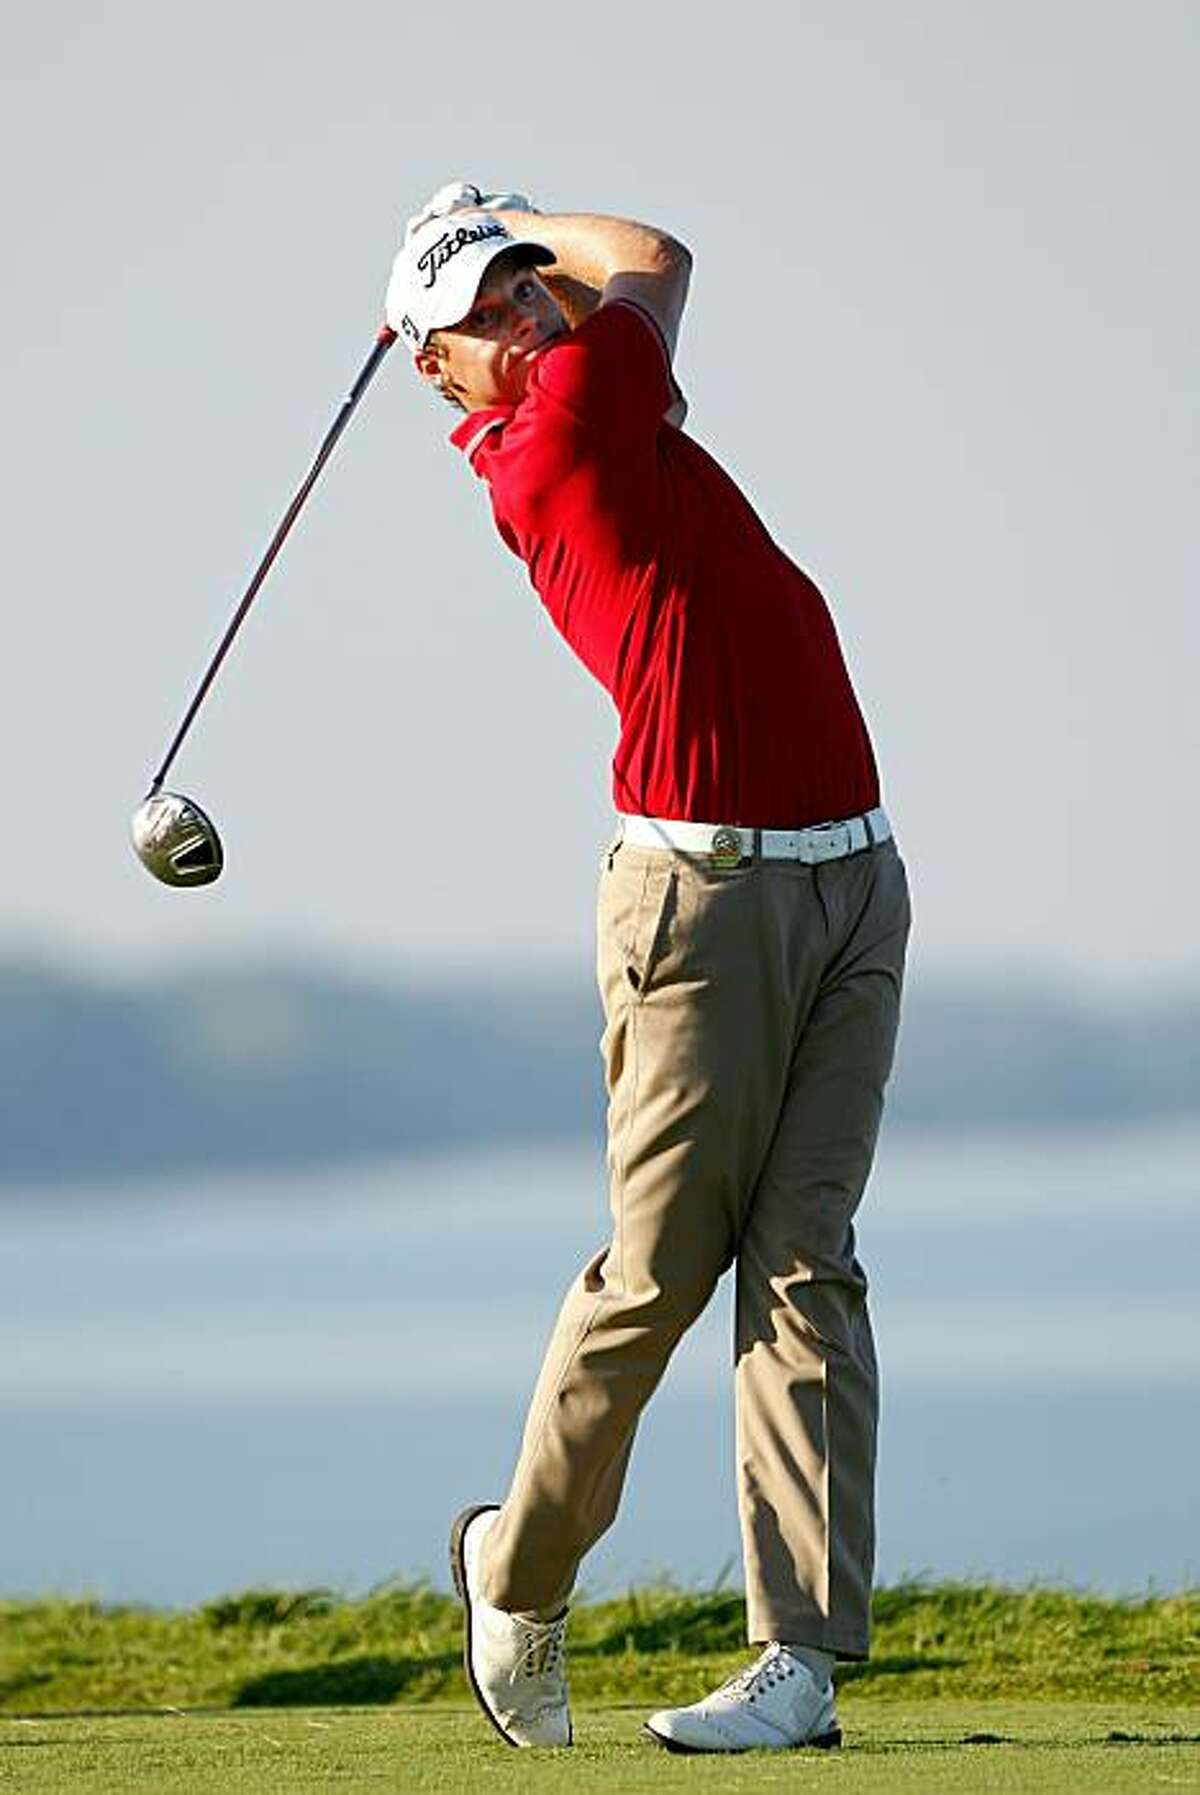 KOHLER, WI - AUGUST 14: Nick Watney hits a tee shot on the 16th hole during the third round of the 92nd PGA Championship on the Straits Course at Whistling Straits on August 14, 2010 in Kohler, Wisconsin.